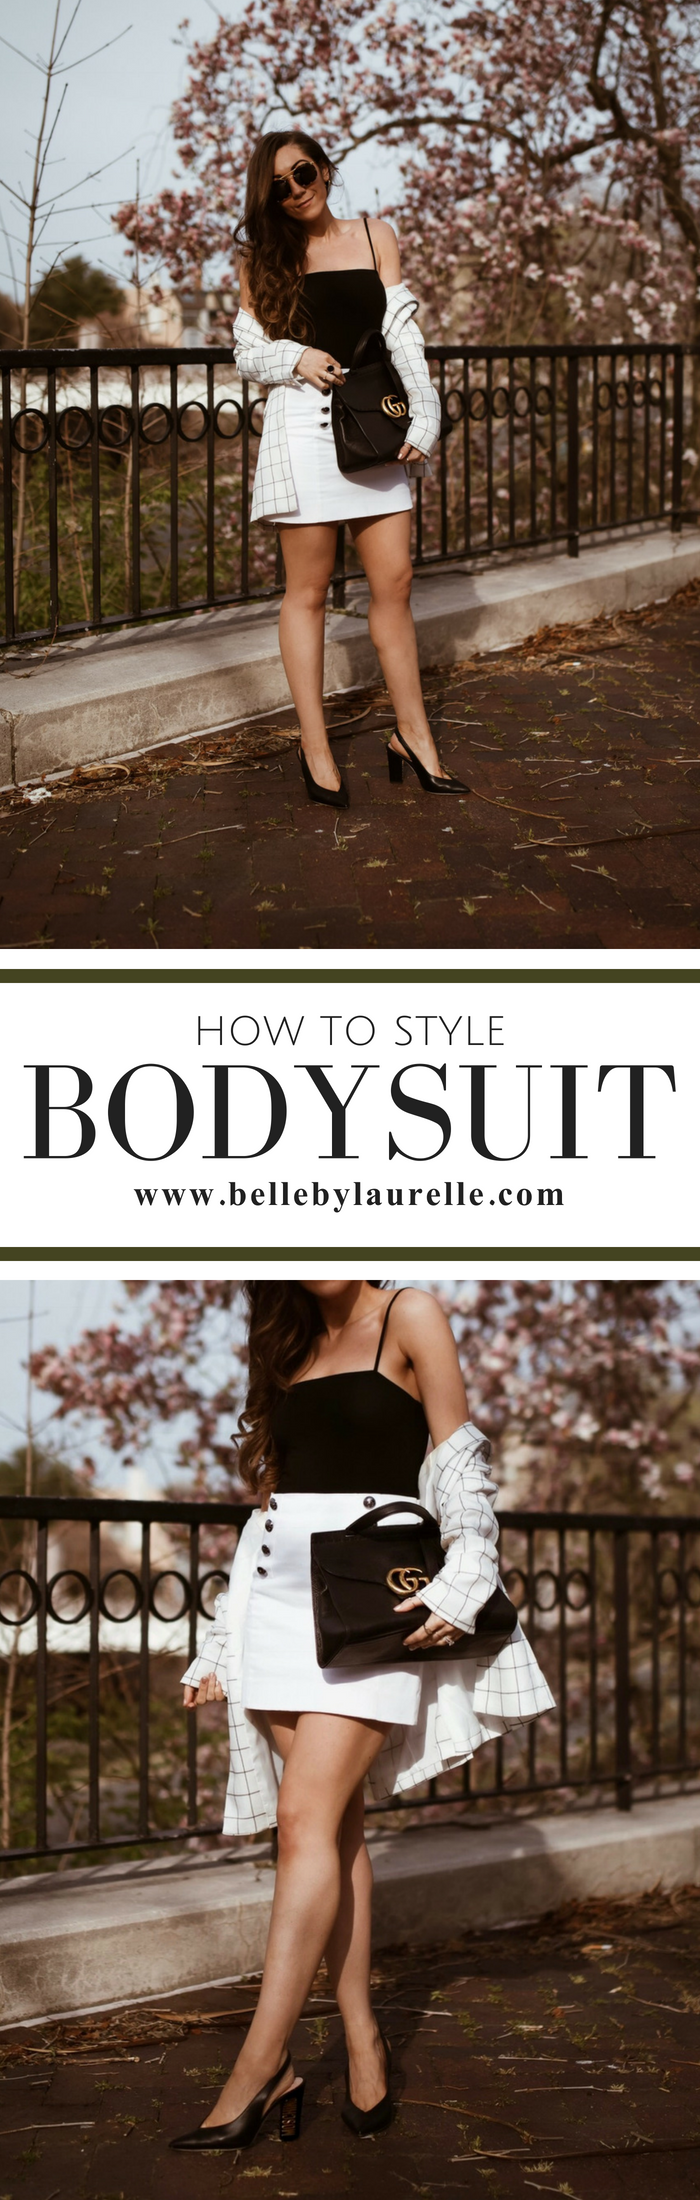 How to Style Bodysuit Belle by Laurelle Blog Fashion